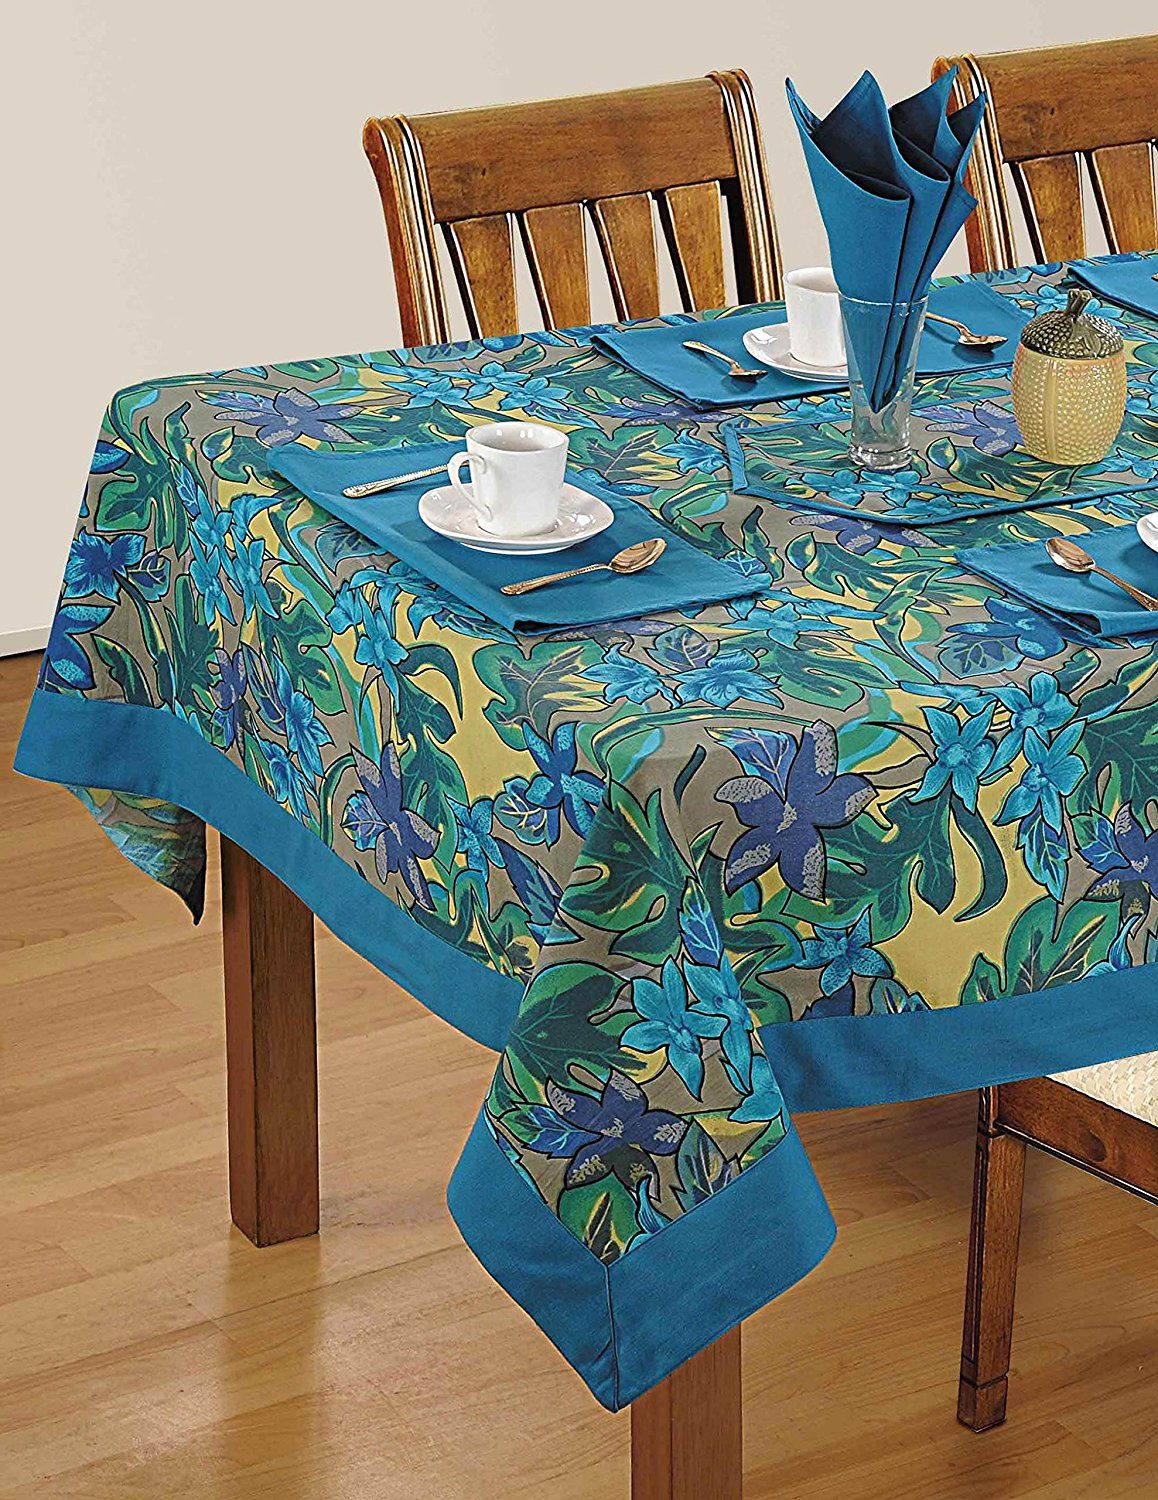 Colorful Multicolor Cotton Spring Floral Tablecloths For Dinning Room 60 X  60 Inches, Blue Border